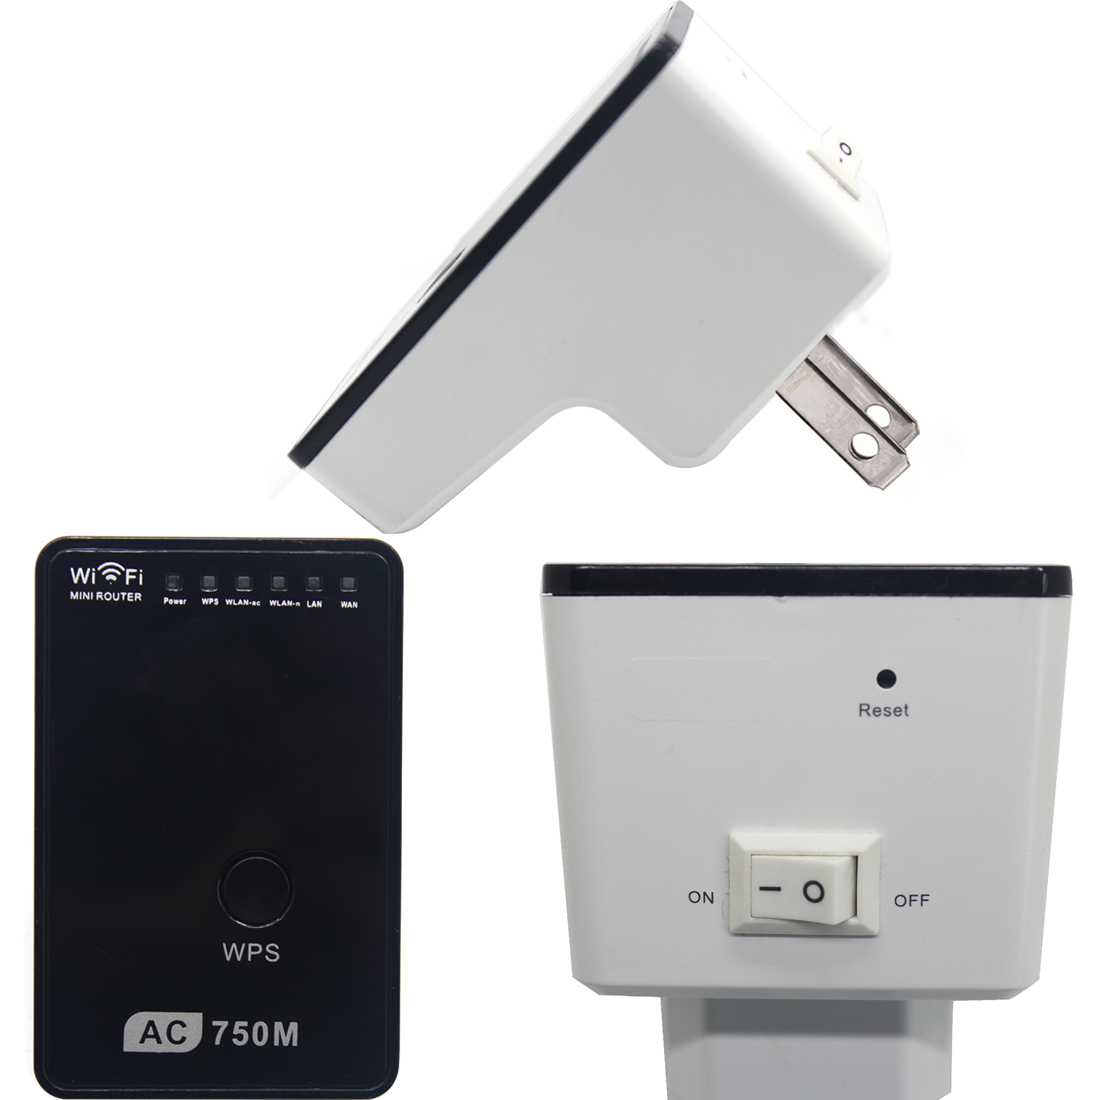 NOYOKERE New Hot Sale 750Mbps Wifi Repeater Wireless Range Extender Booster 802.11N Durable Signal Amplifier wlan EU/US